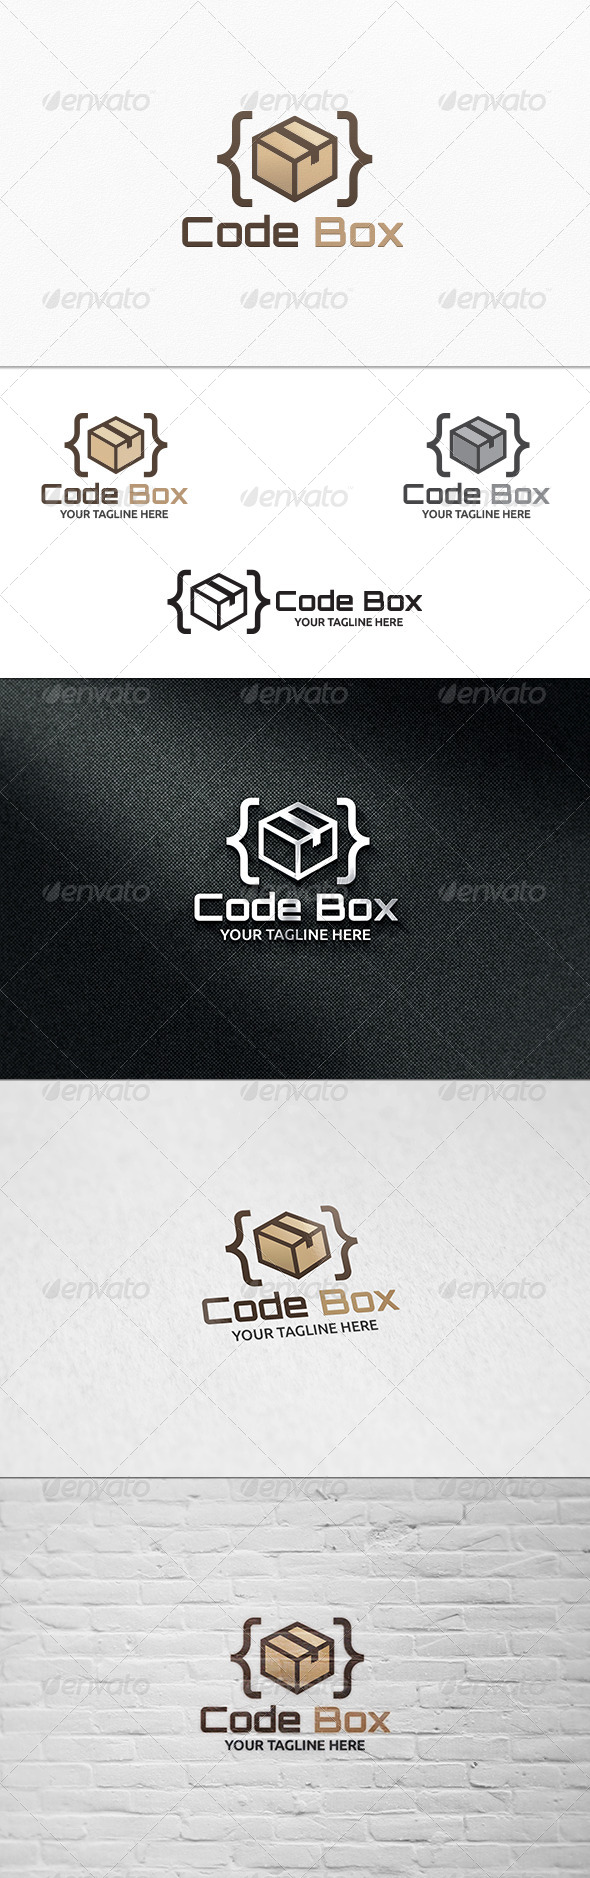 GraphicRiver Code Box Logo Template 8192625